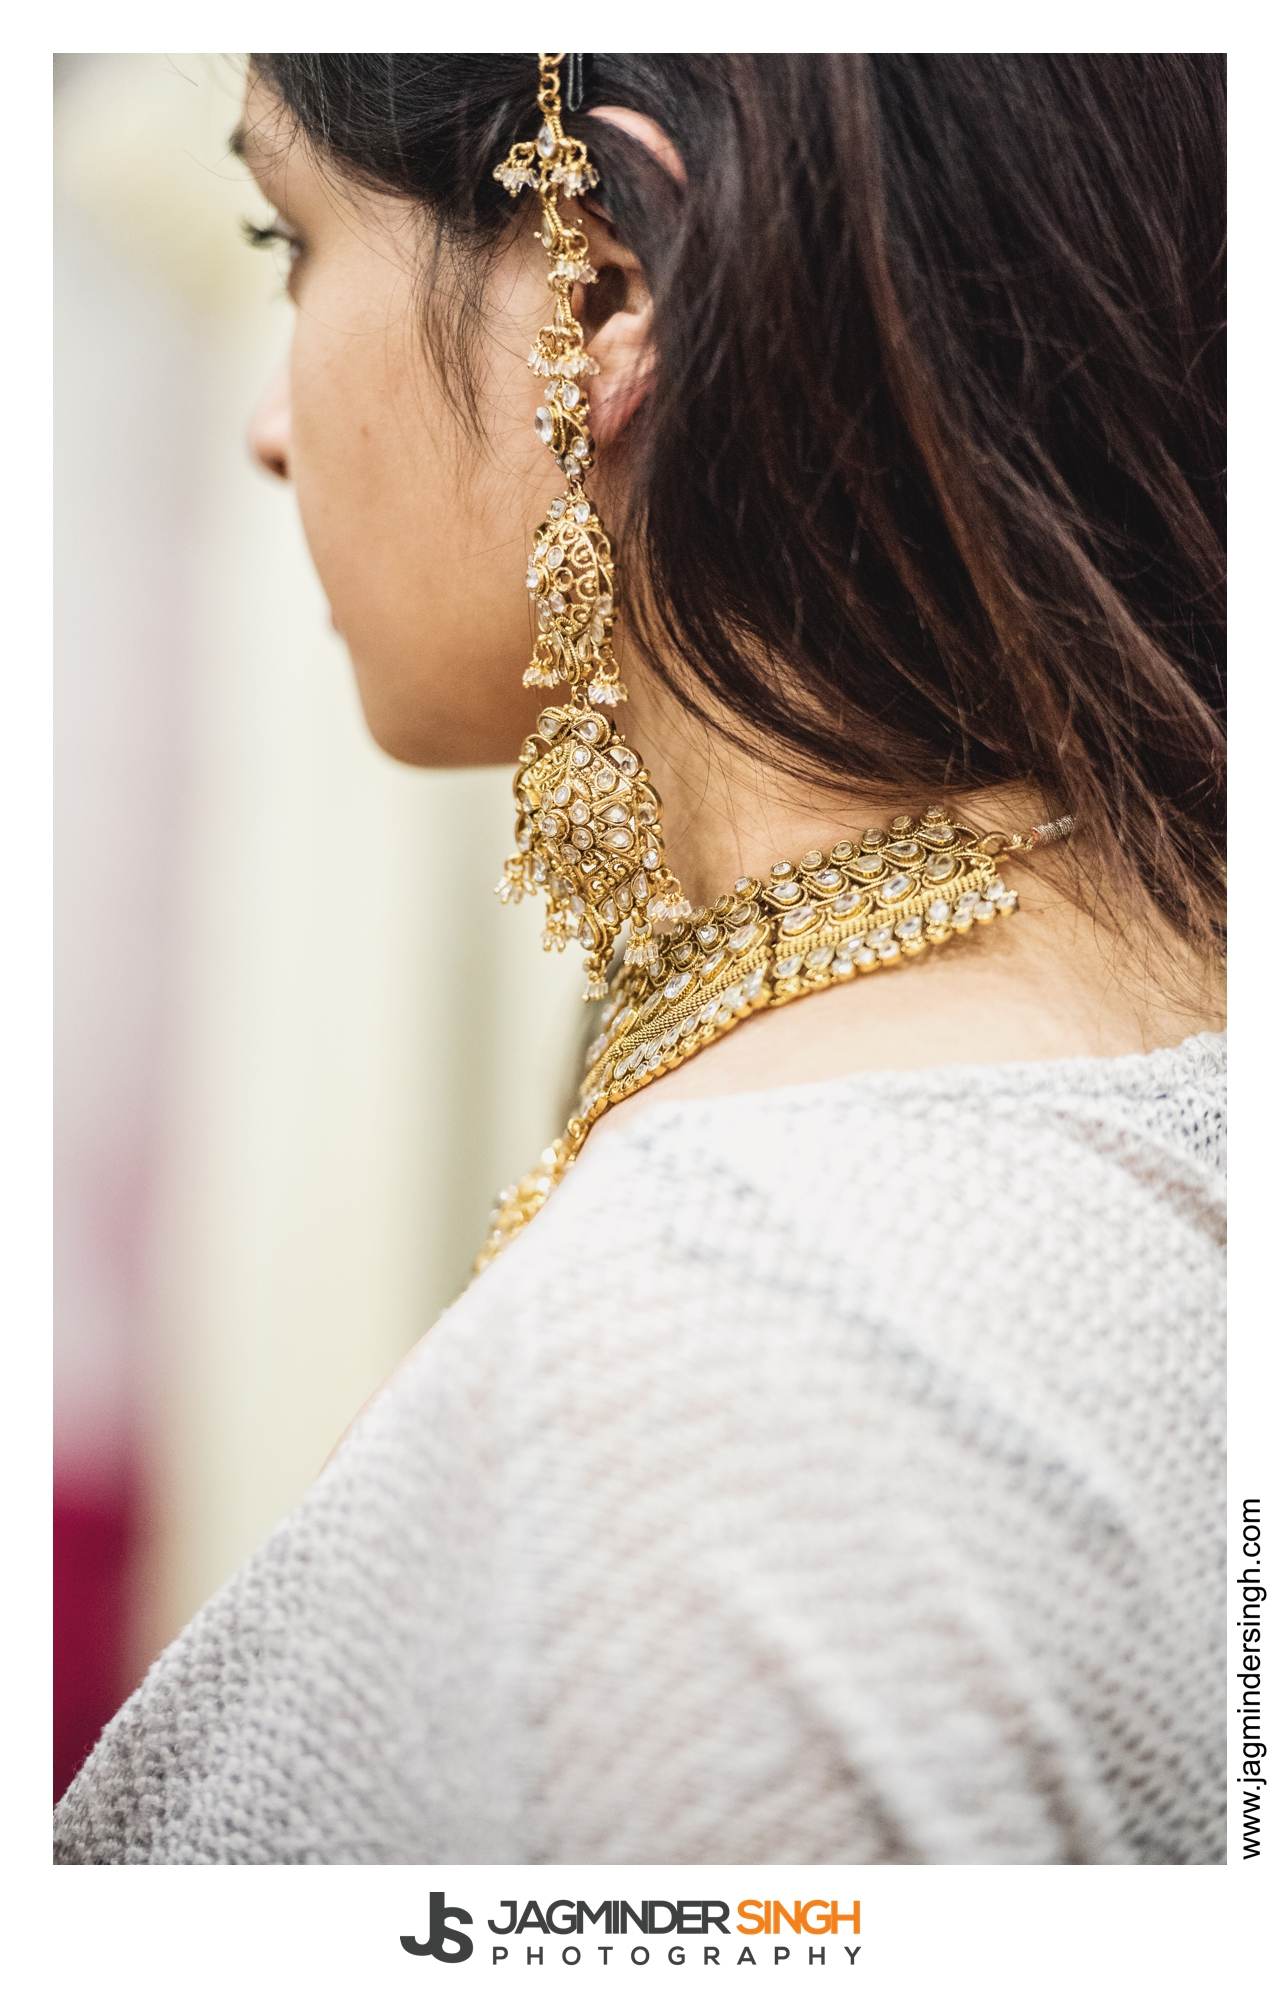 Jagminder-Singh-Photography-Ethnic-Couture0167.JPG